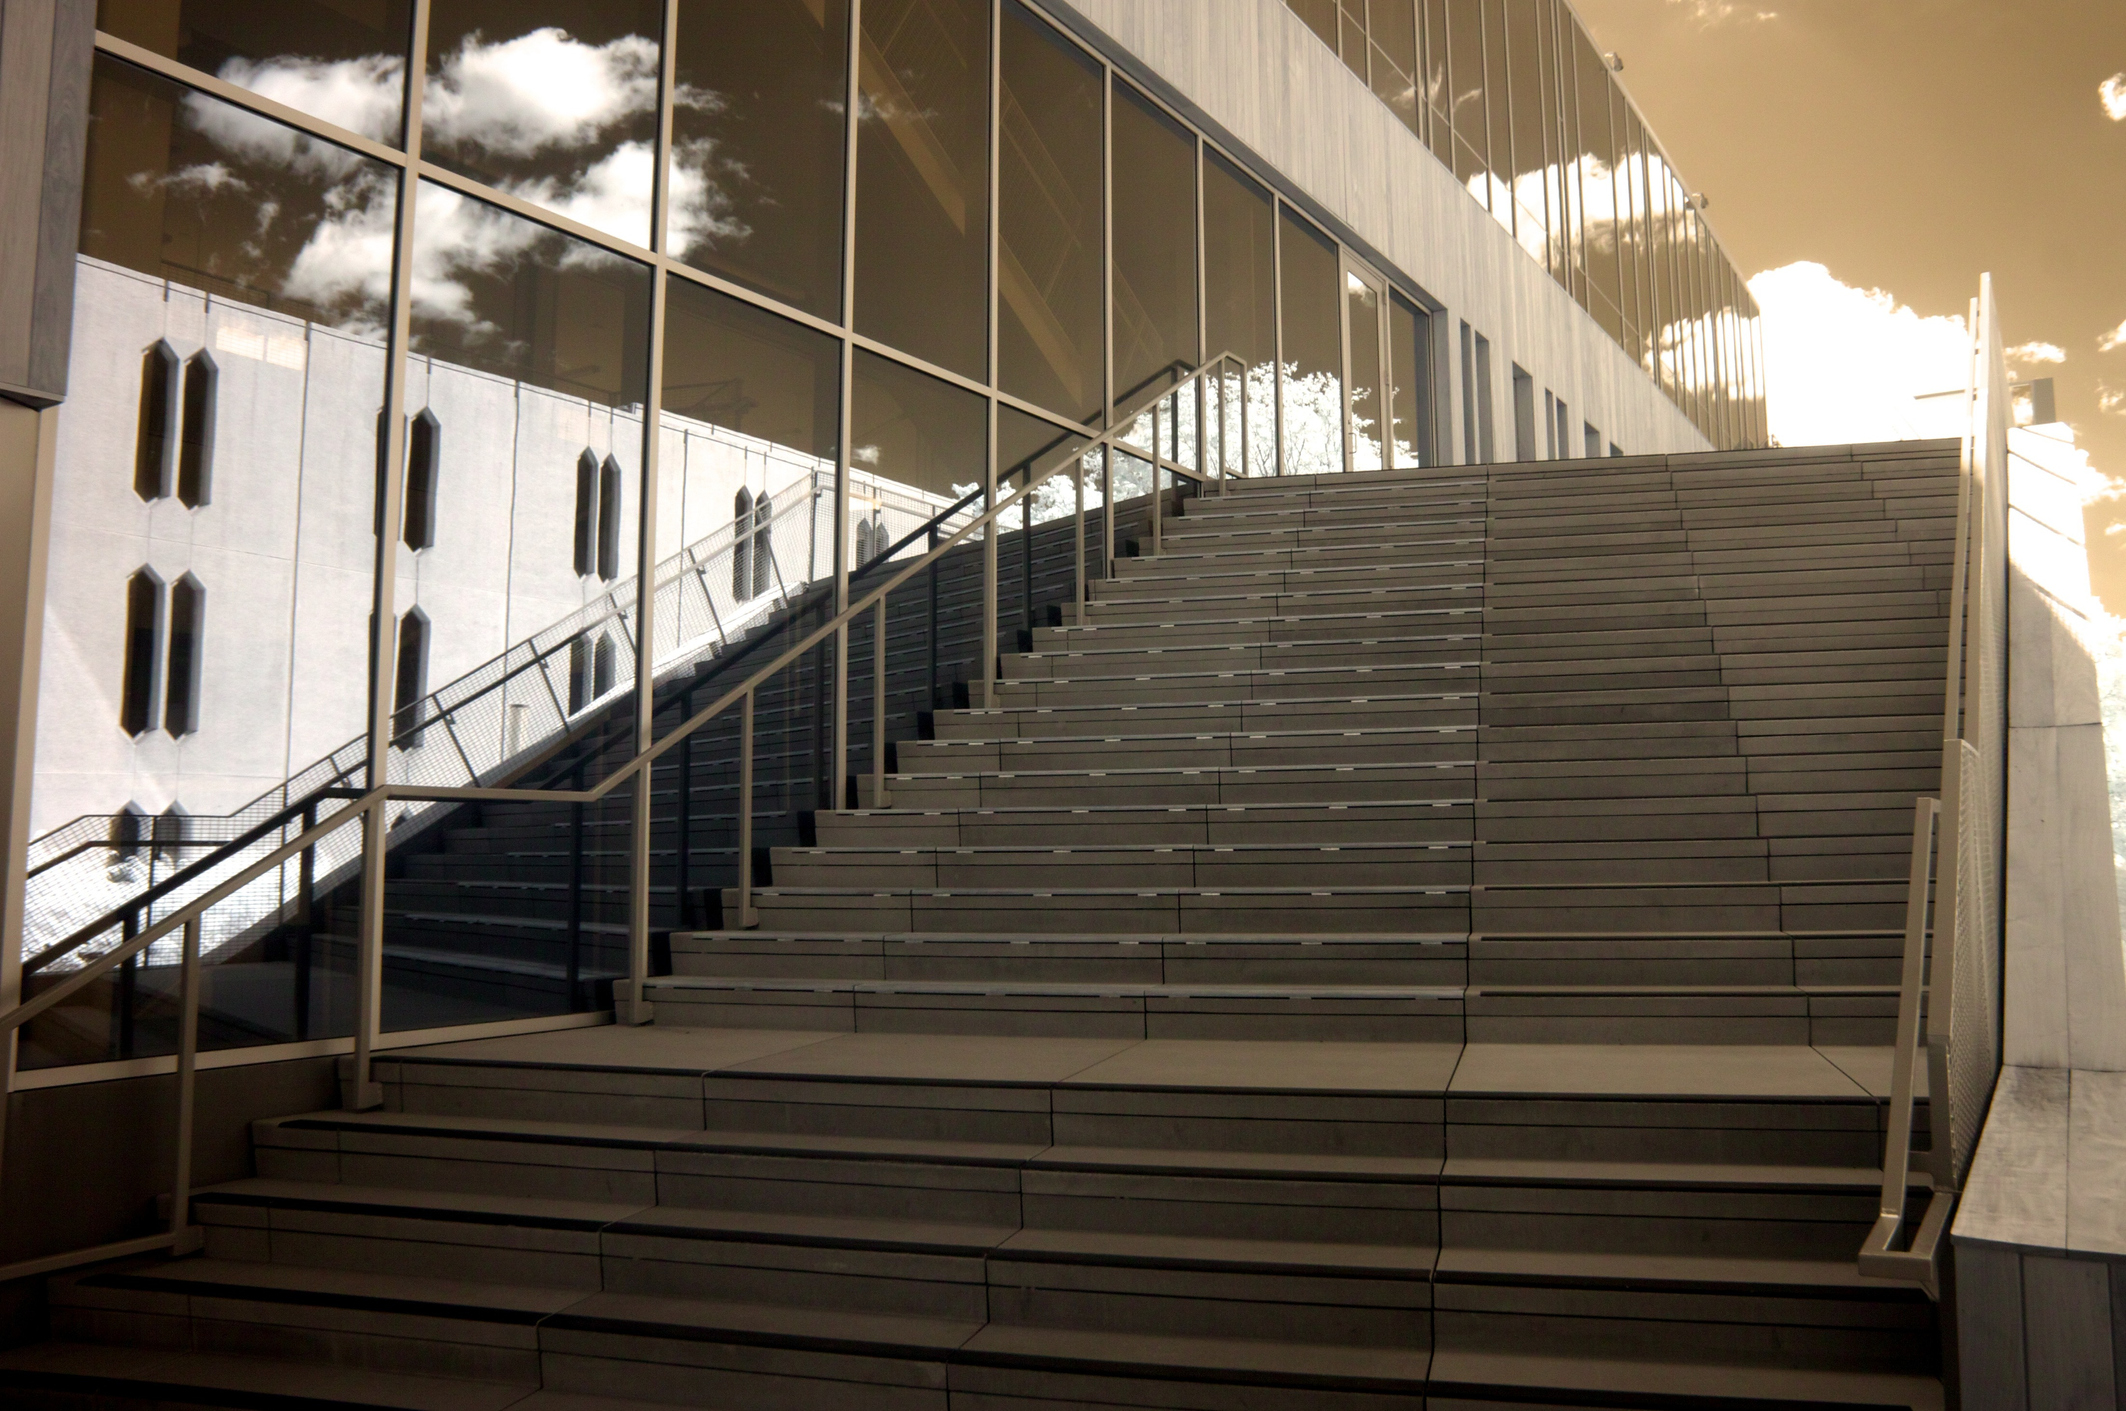 Oberlin College Staircase - infrared